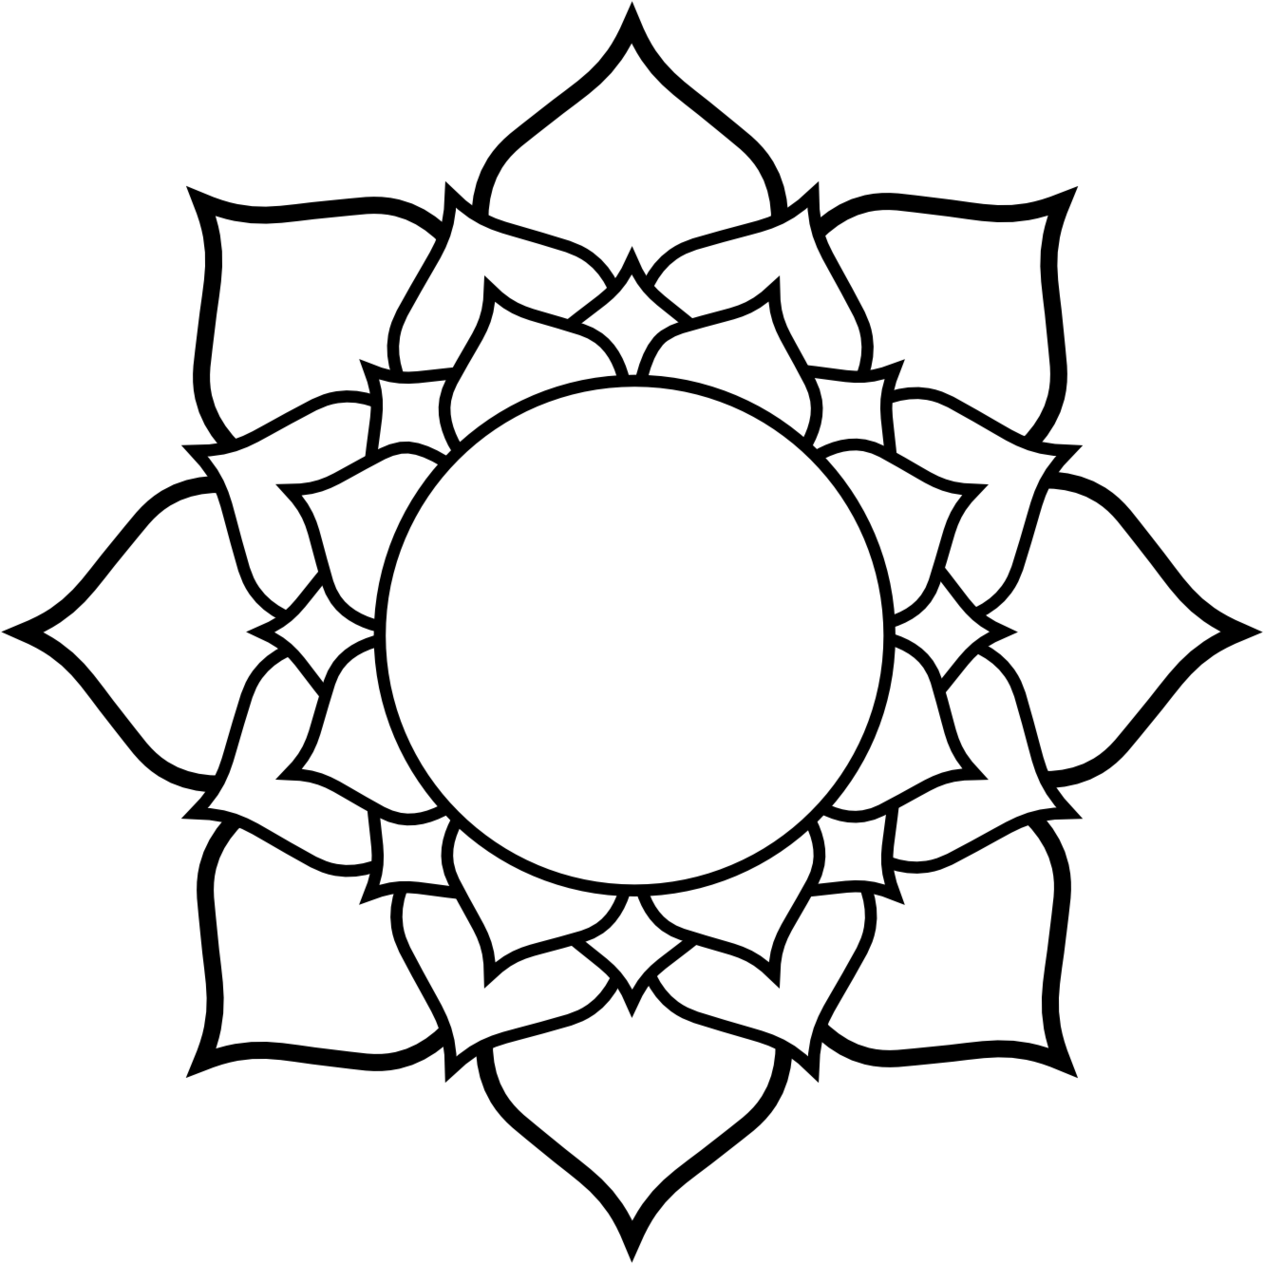 Blossom drawing linework. Collection of lotus